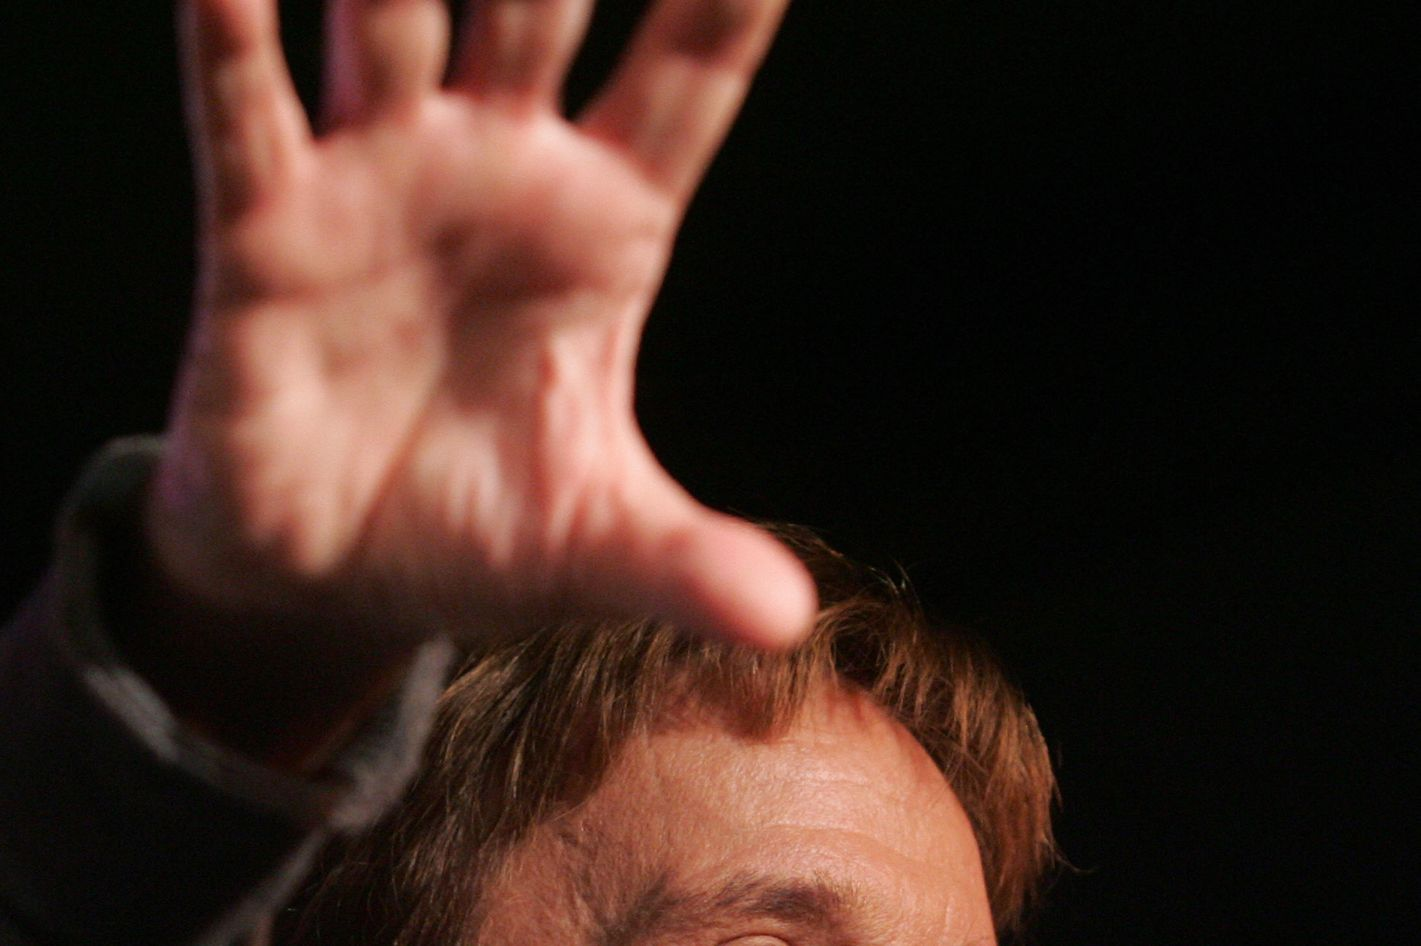 """US Actor Chuck Norris speaks during a """"Huck and Chuck"""" rally for Republican Presidential hopeful and former Arkansas Governor Mike Huckabee at the Val Air Ballroom in Des Moines, Iowa, 01 January 2008. AFP PHOTO/SAUL LOEB (Photo credit should read SAUL LOEB/AFP/Getty Images)"""